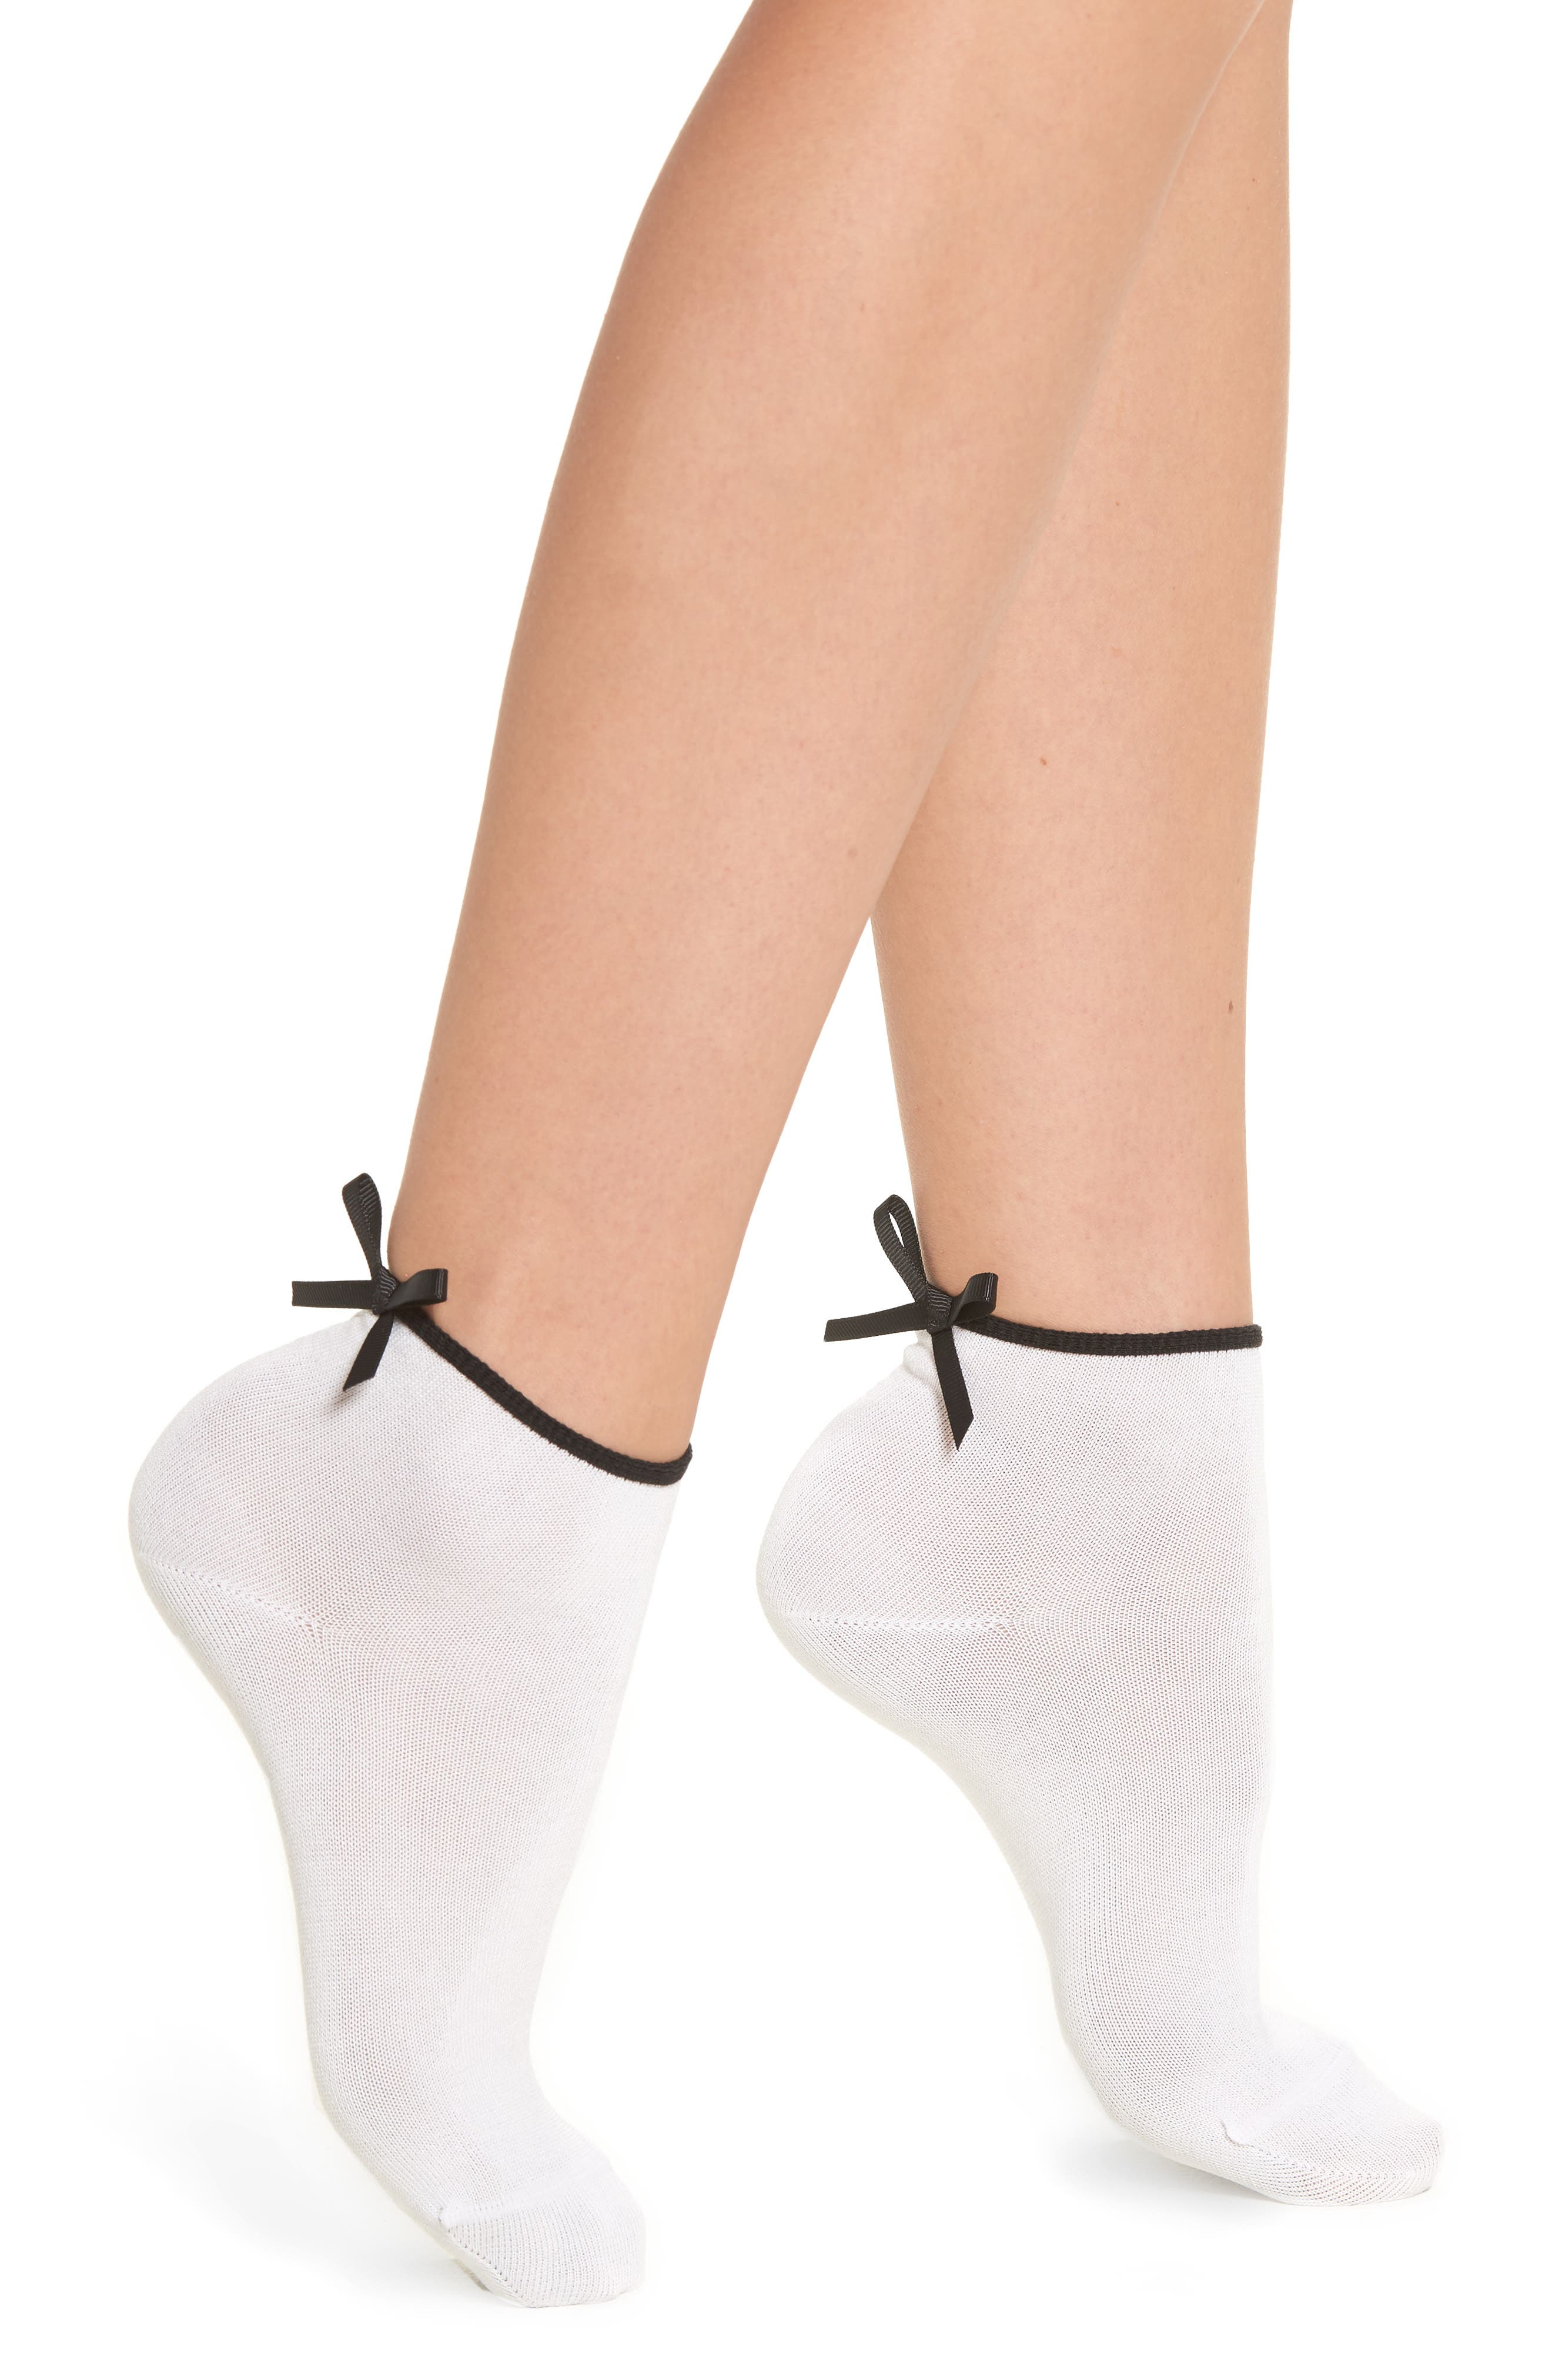 Bow Back Ankle Socks,                             Main thumbnail 1, color,                             White